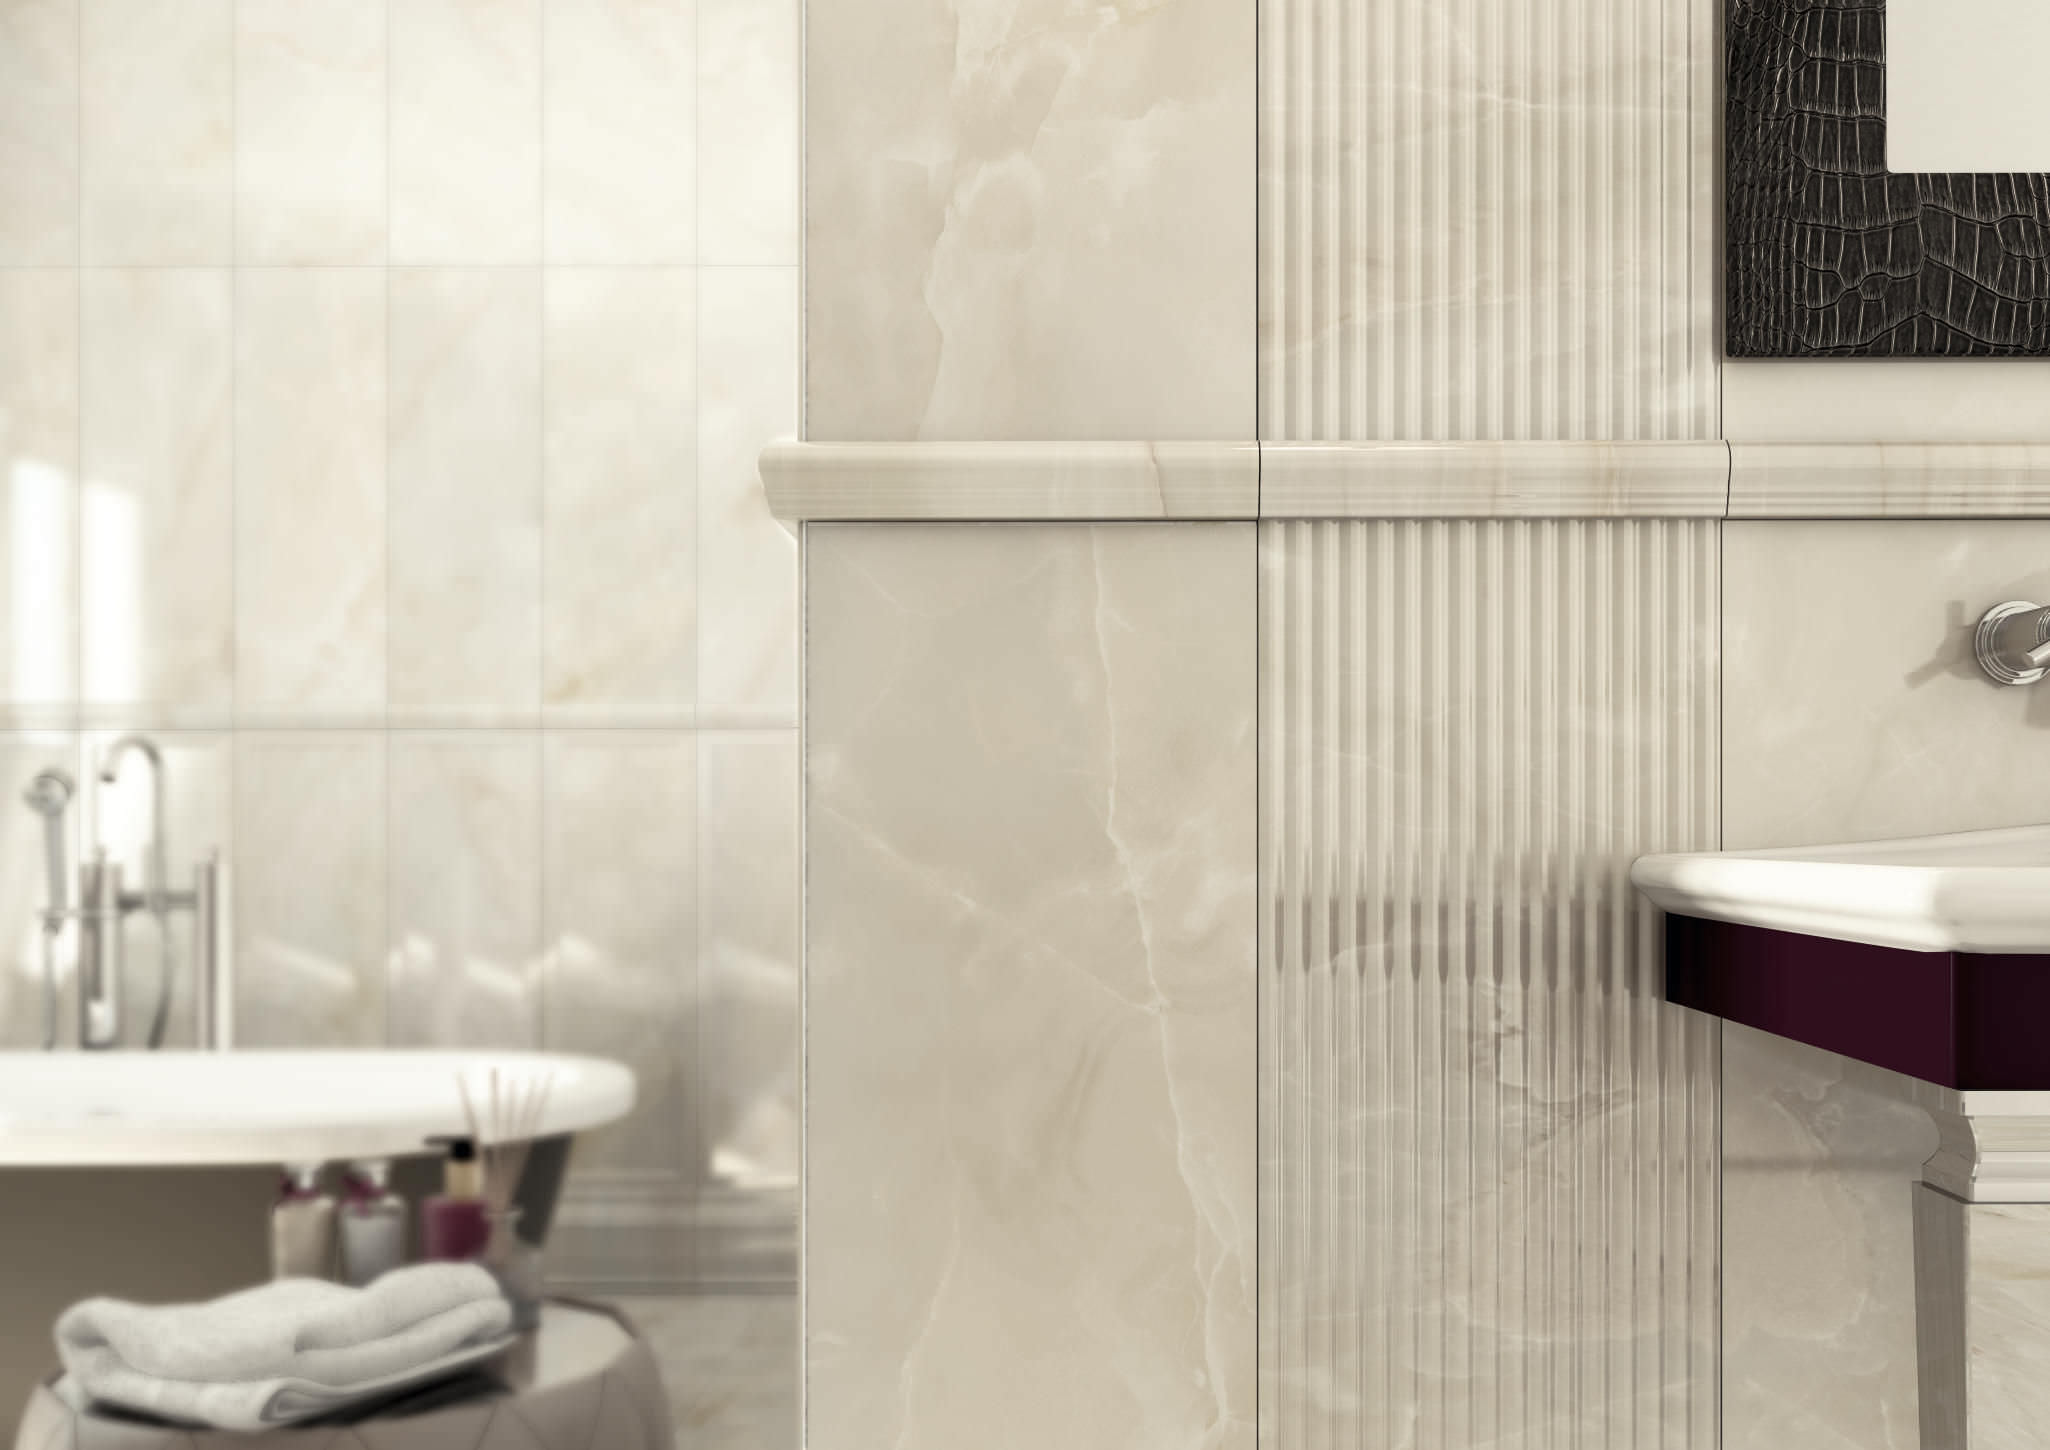 23 Stunning Ideas Of Clean Marble Bathroom Tiles 2019